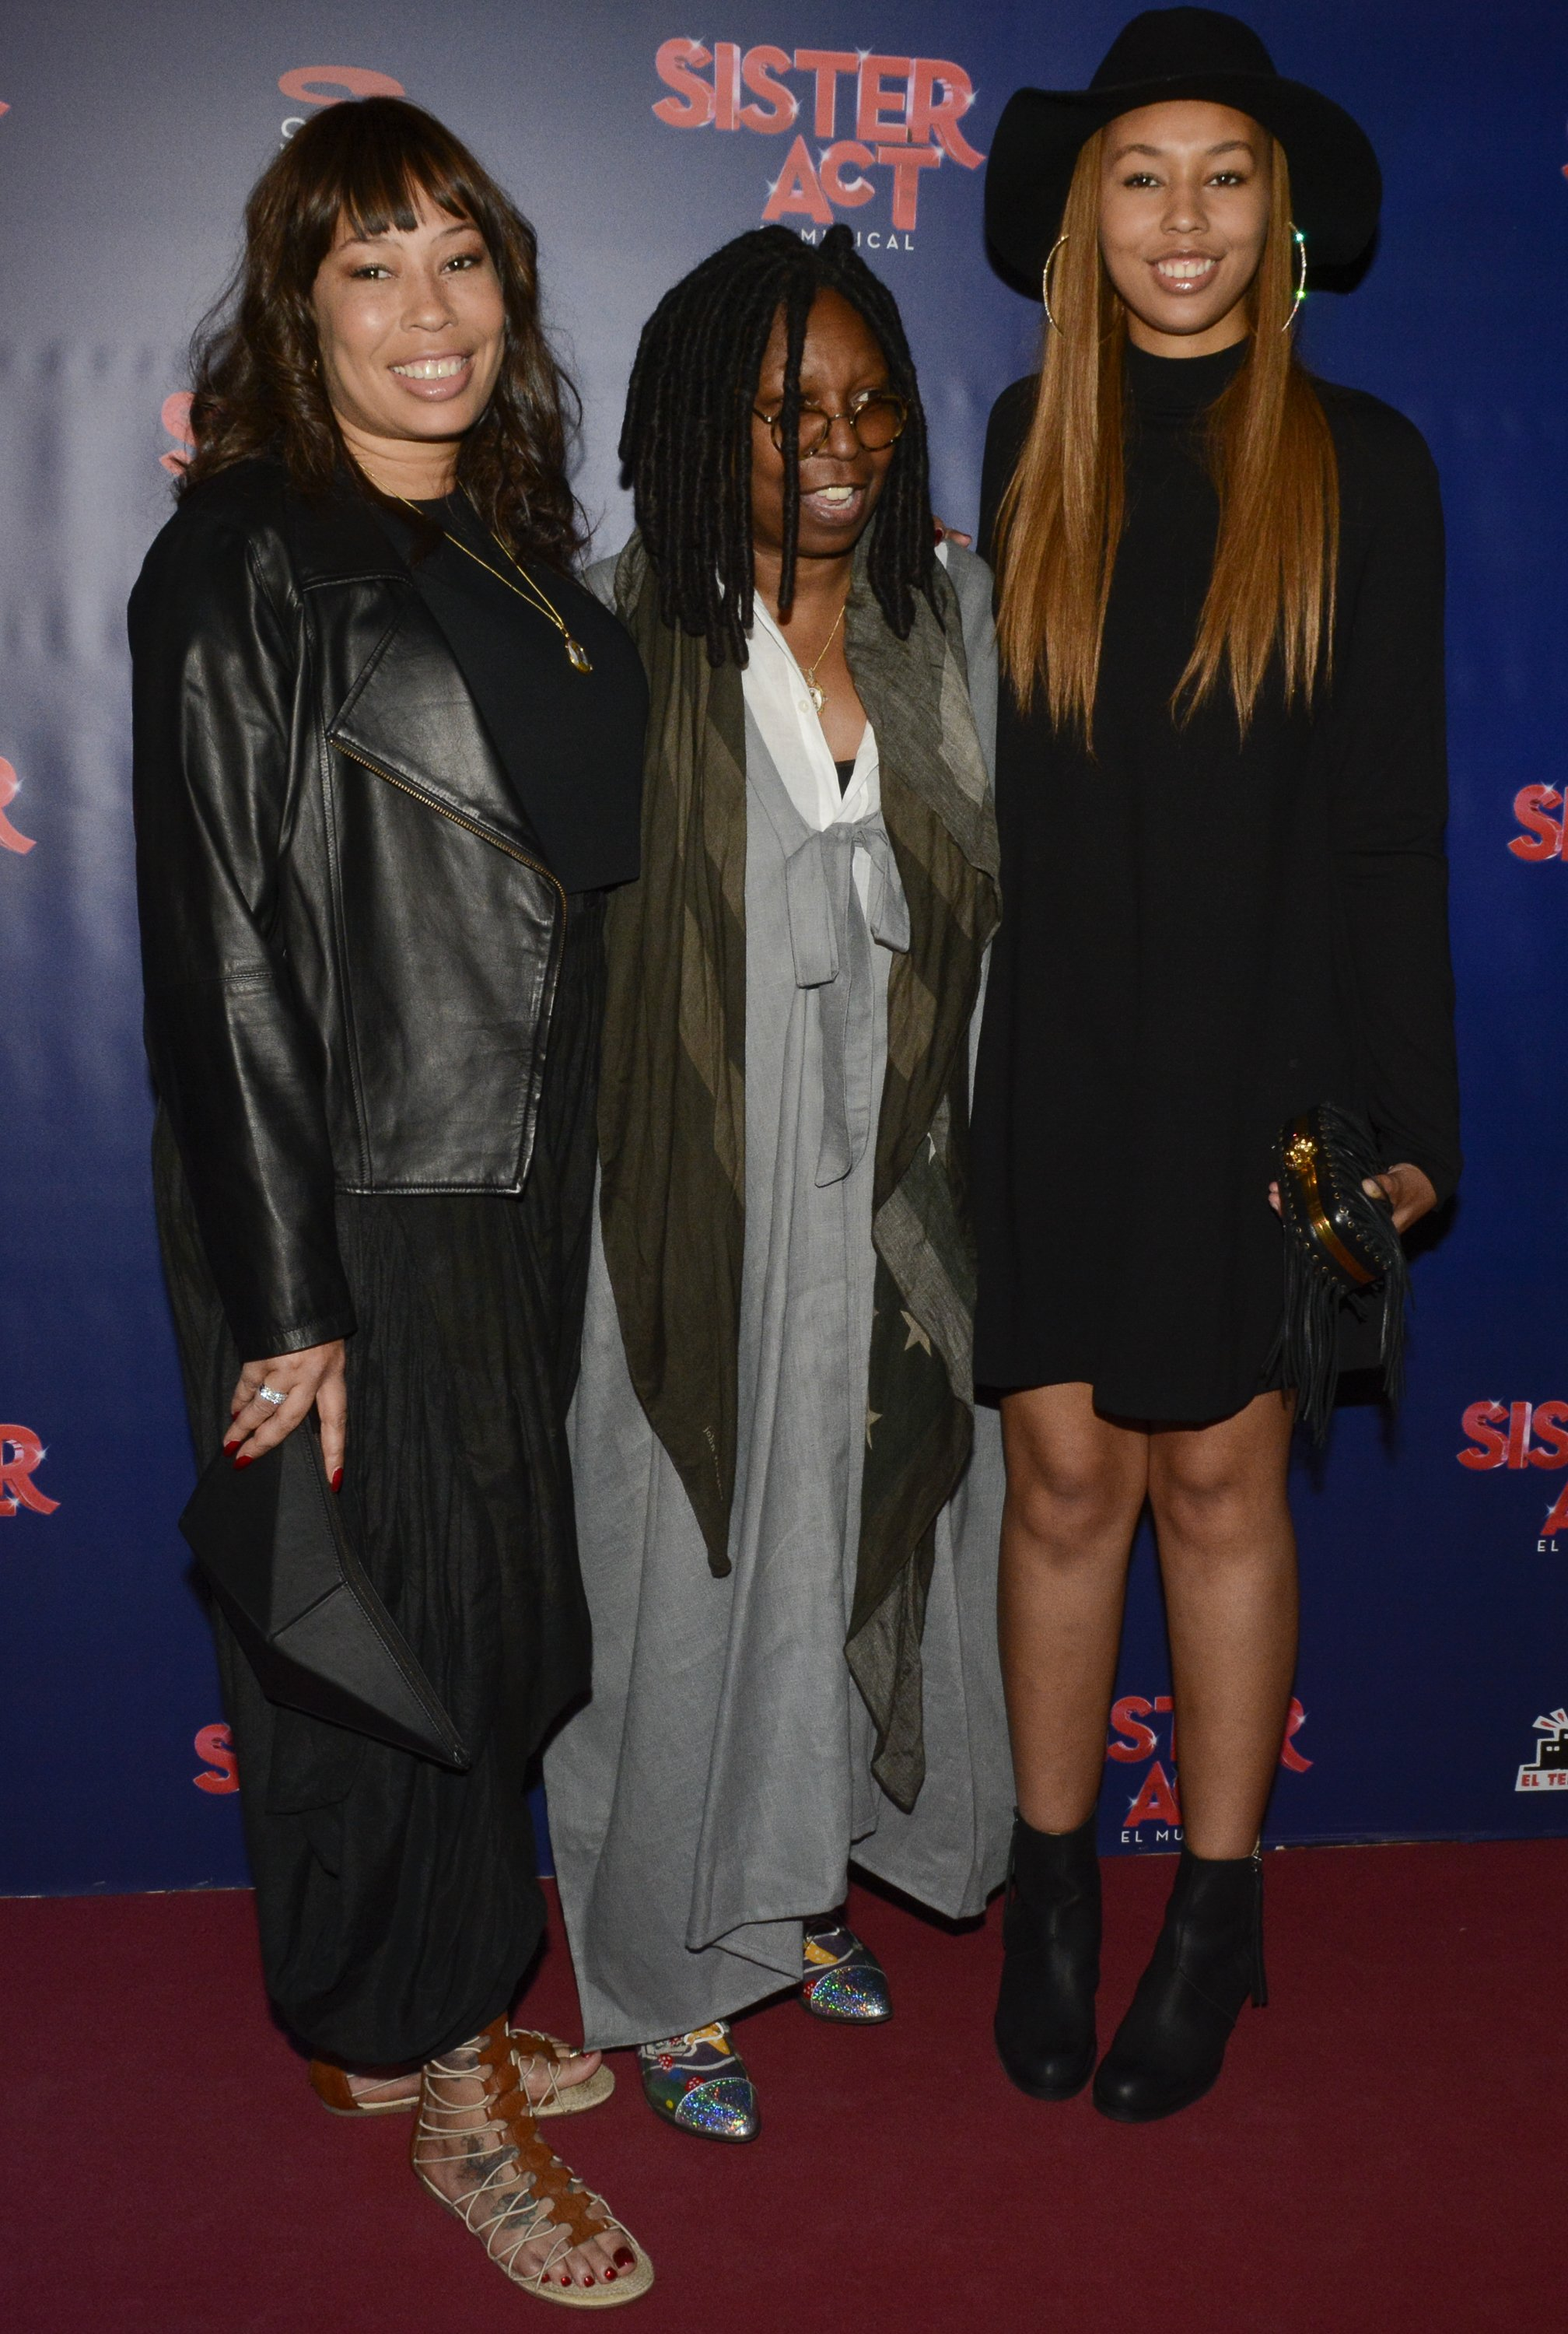 (L-R) Alex Martin, Whoopi Goldberg and Alex's daughter Jerzey Martin at the premiere of 'Sister Act' on Oct. 23, 2014 in Barcelona, Spain. |Photo: Getty Images